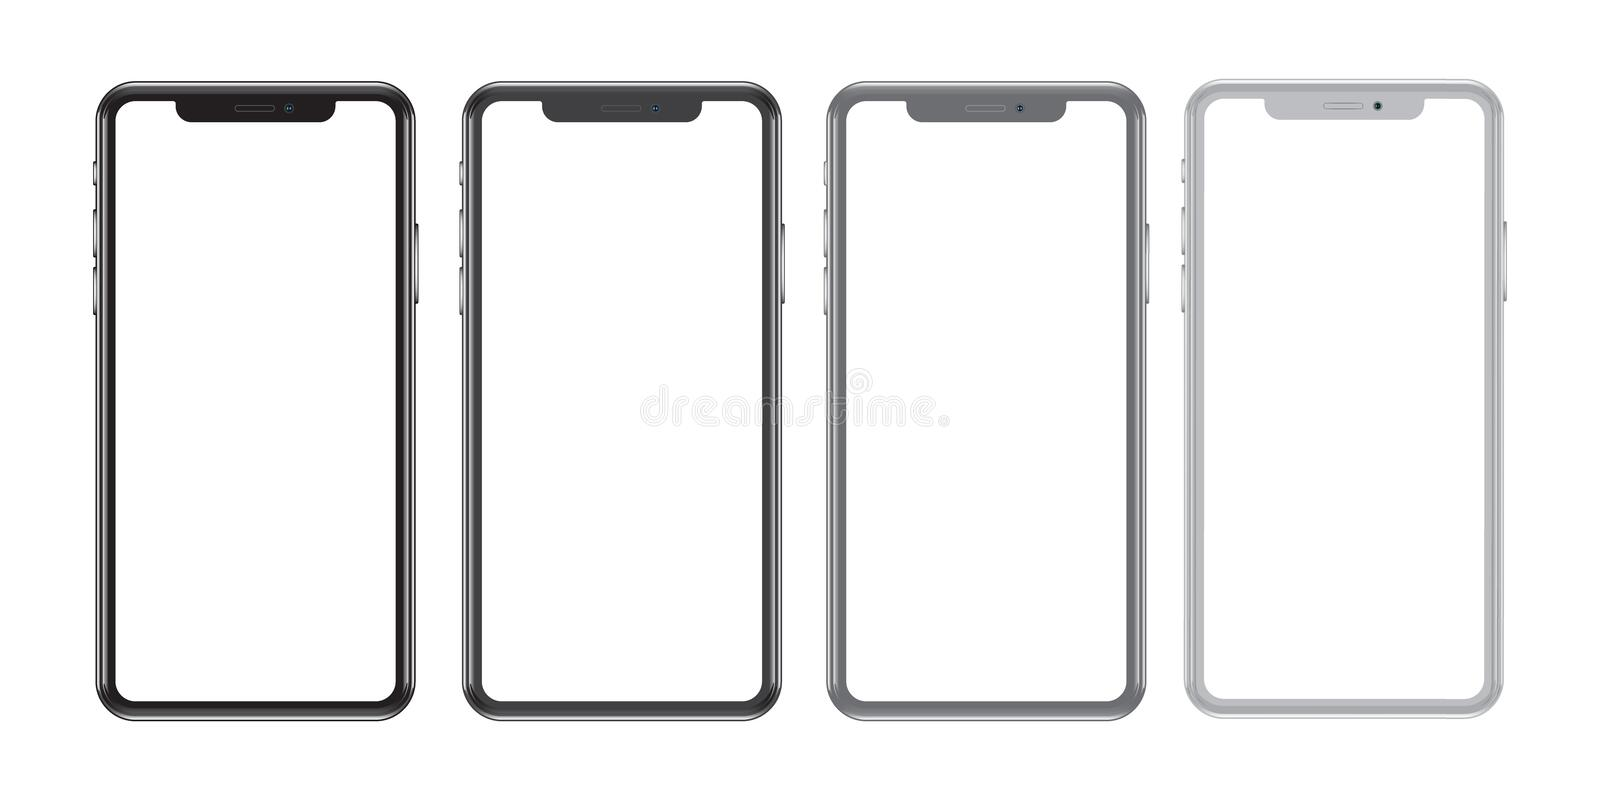 Set of mobile phones front with details on a white background. Realistic illustration of high quality vector illustration